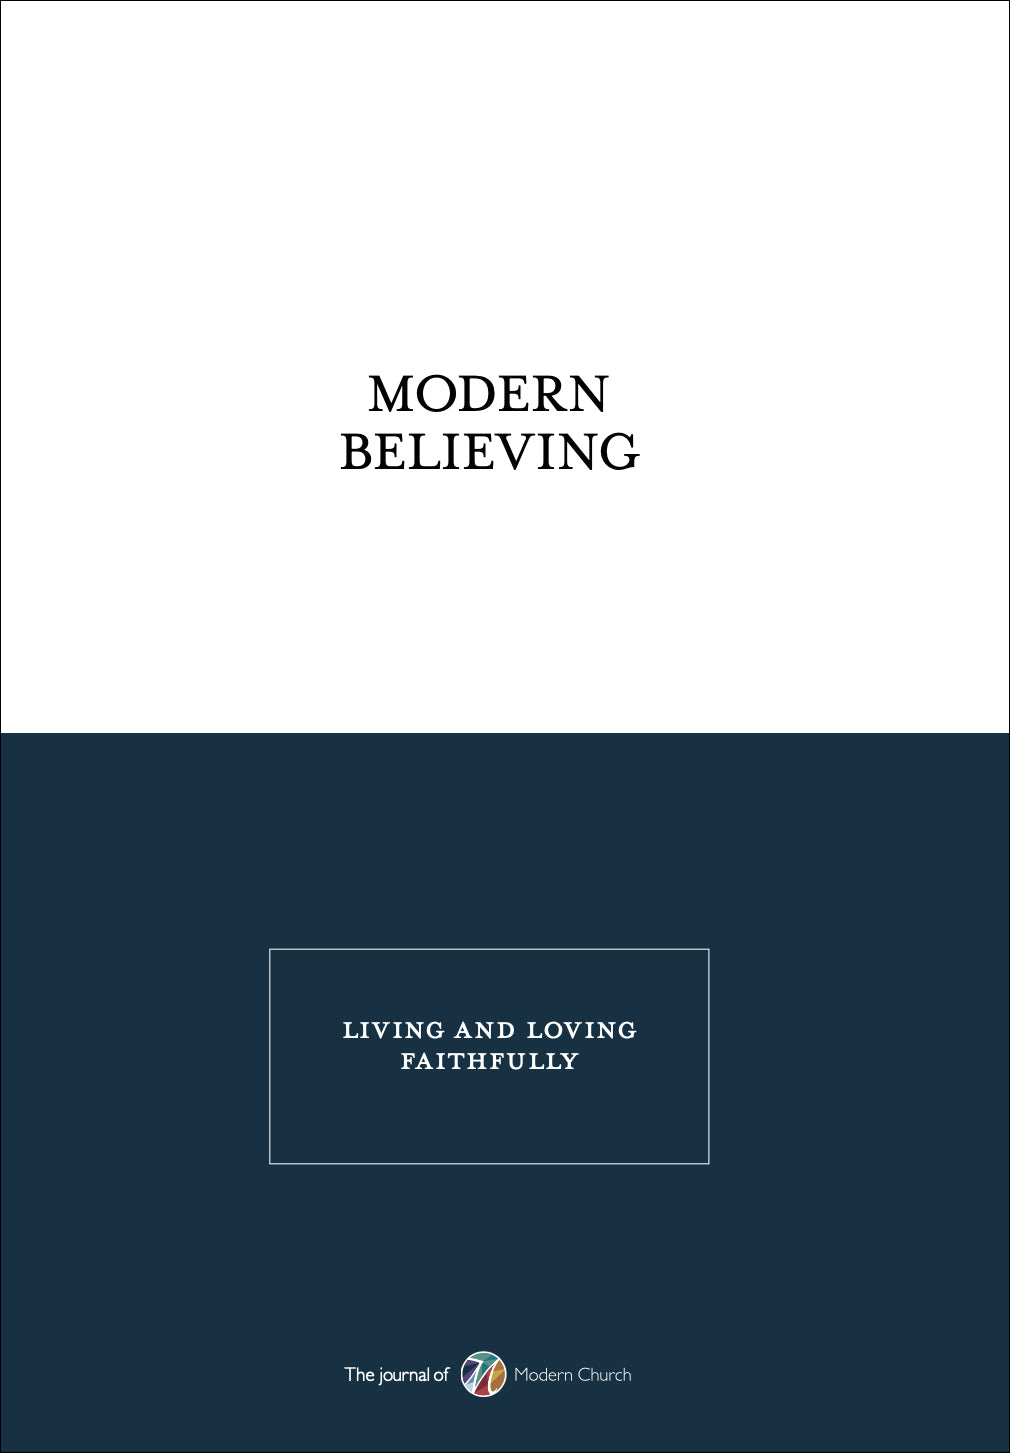 link to Modern Believing